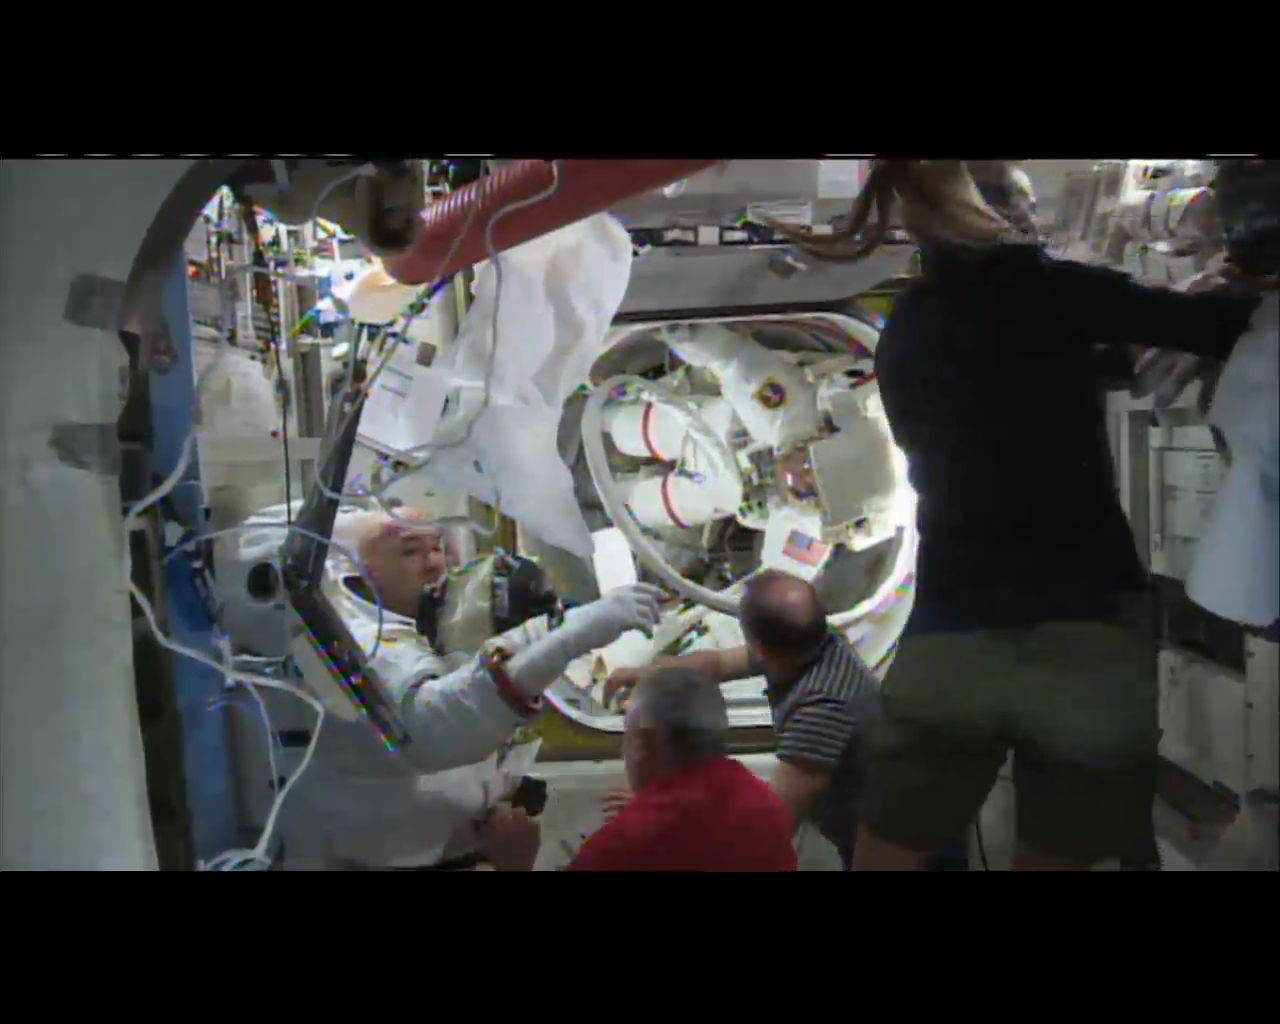 Two Spacewalkers Re-Enter Following Cancellation